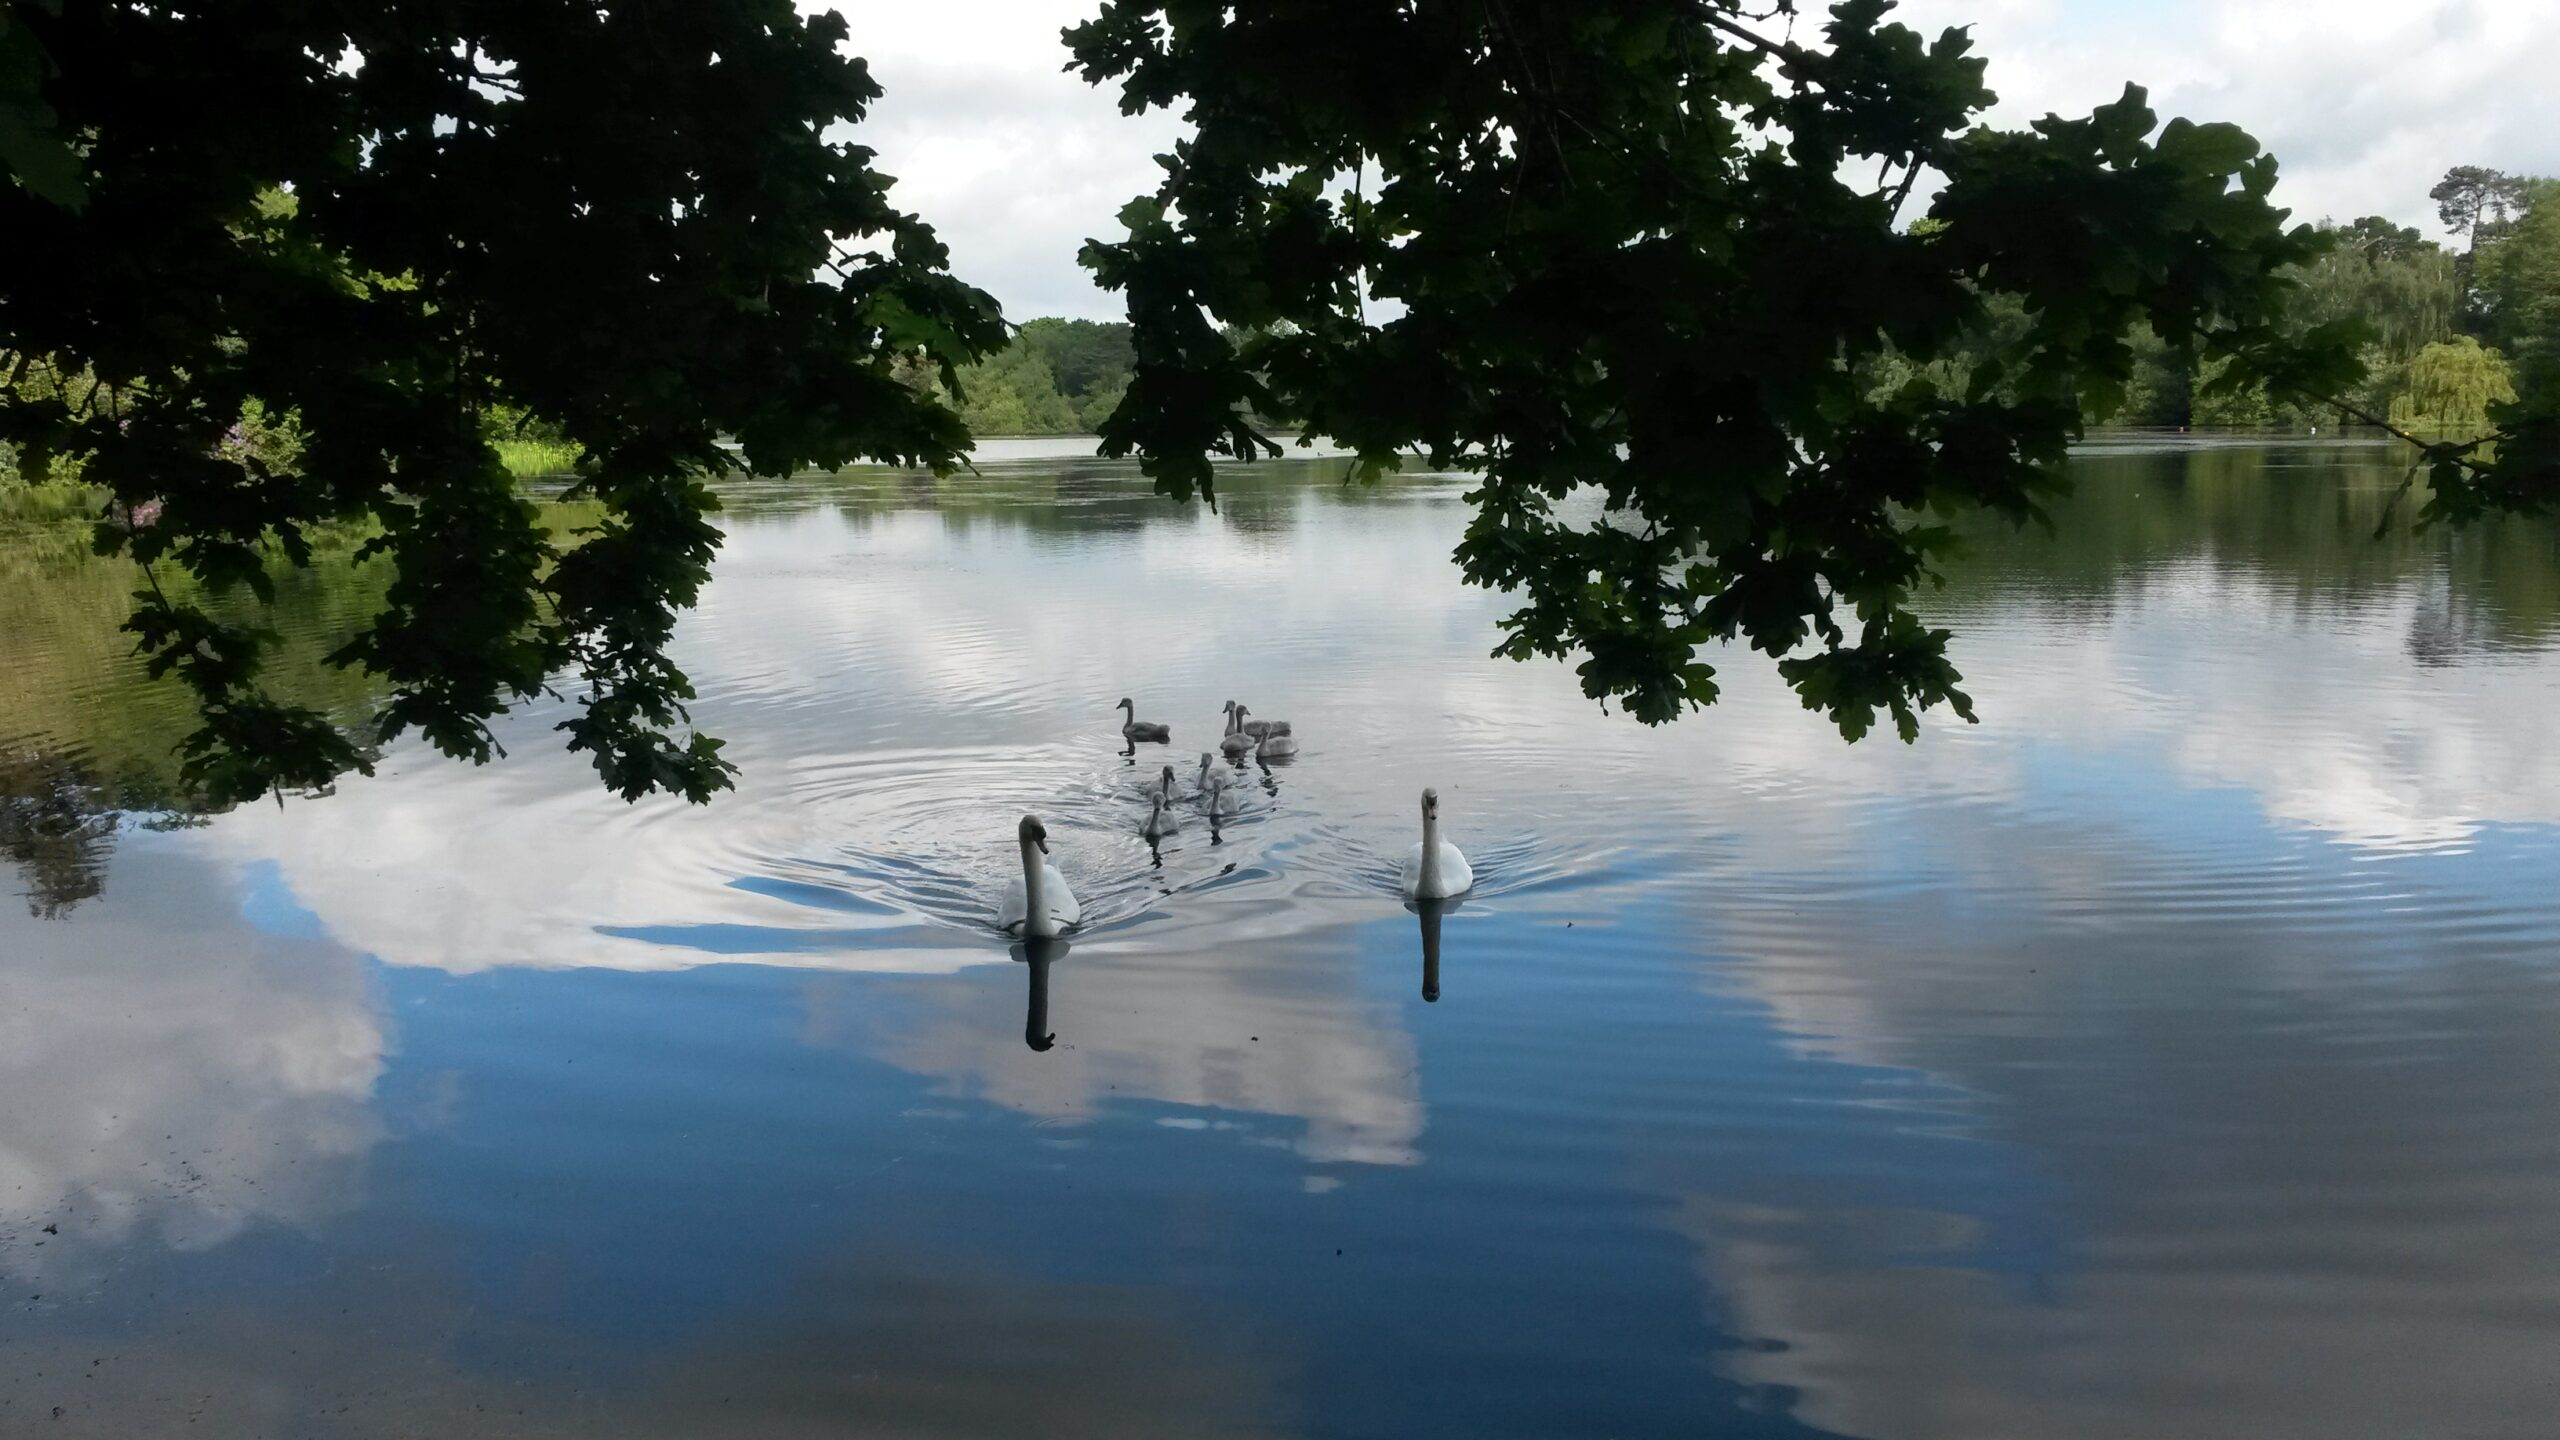 A view of a beautiful lake with a family of swans swimming towards the camera